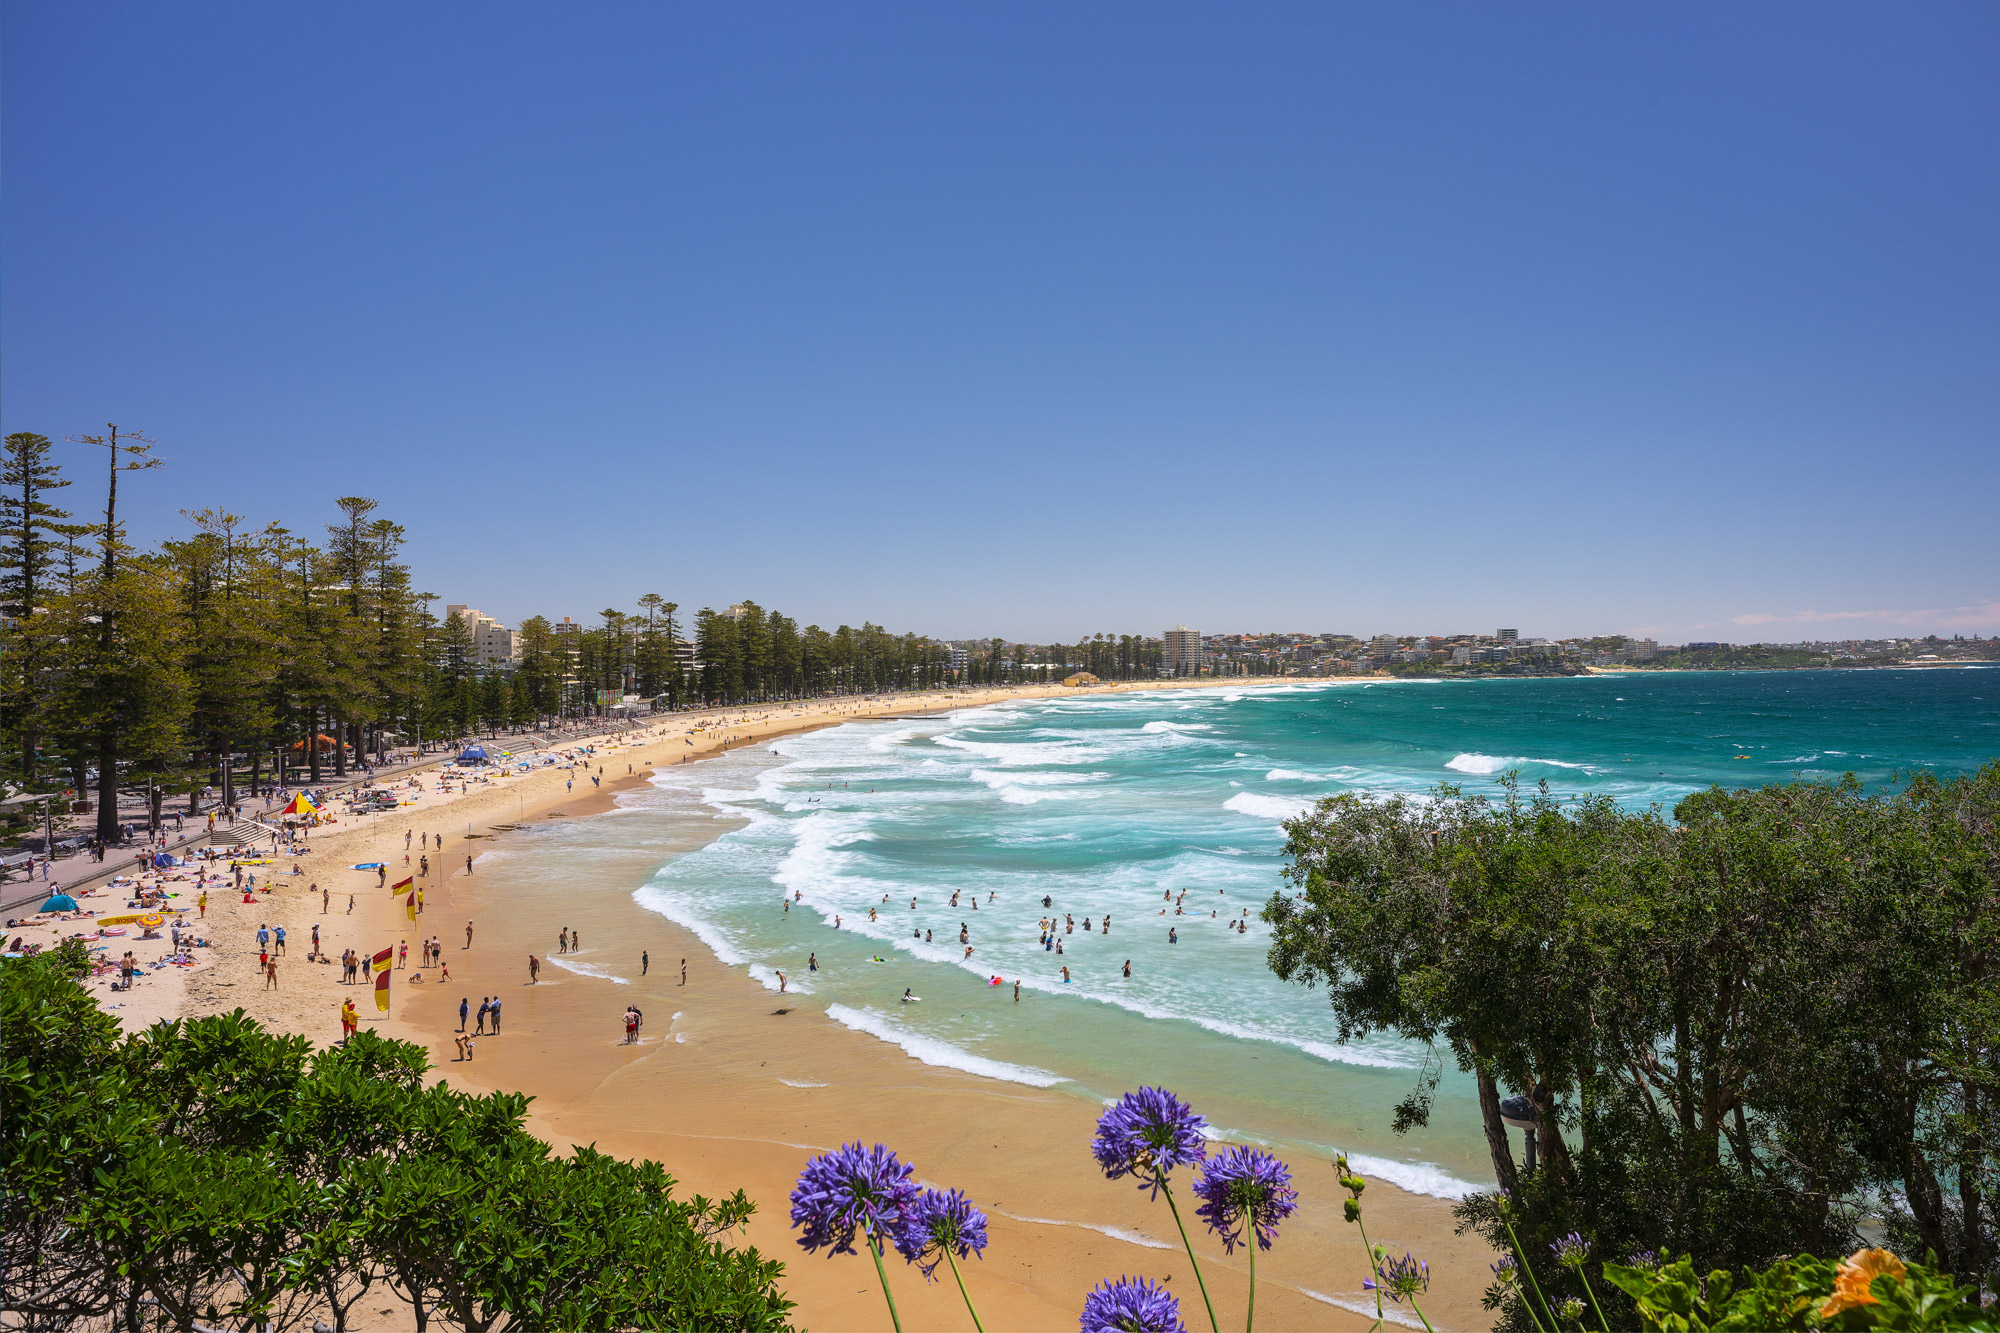 A summer's day at Manly Beach, Manly